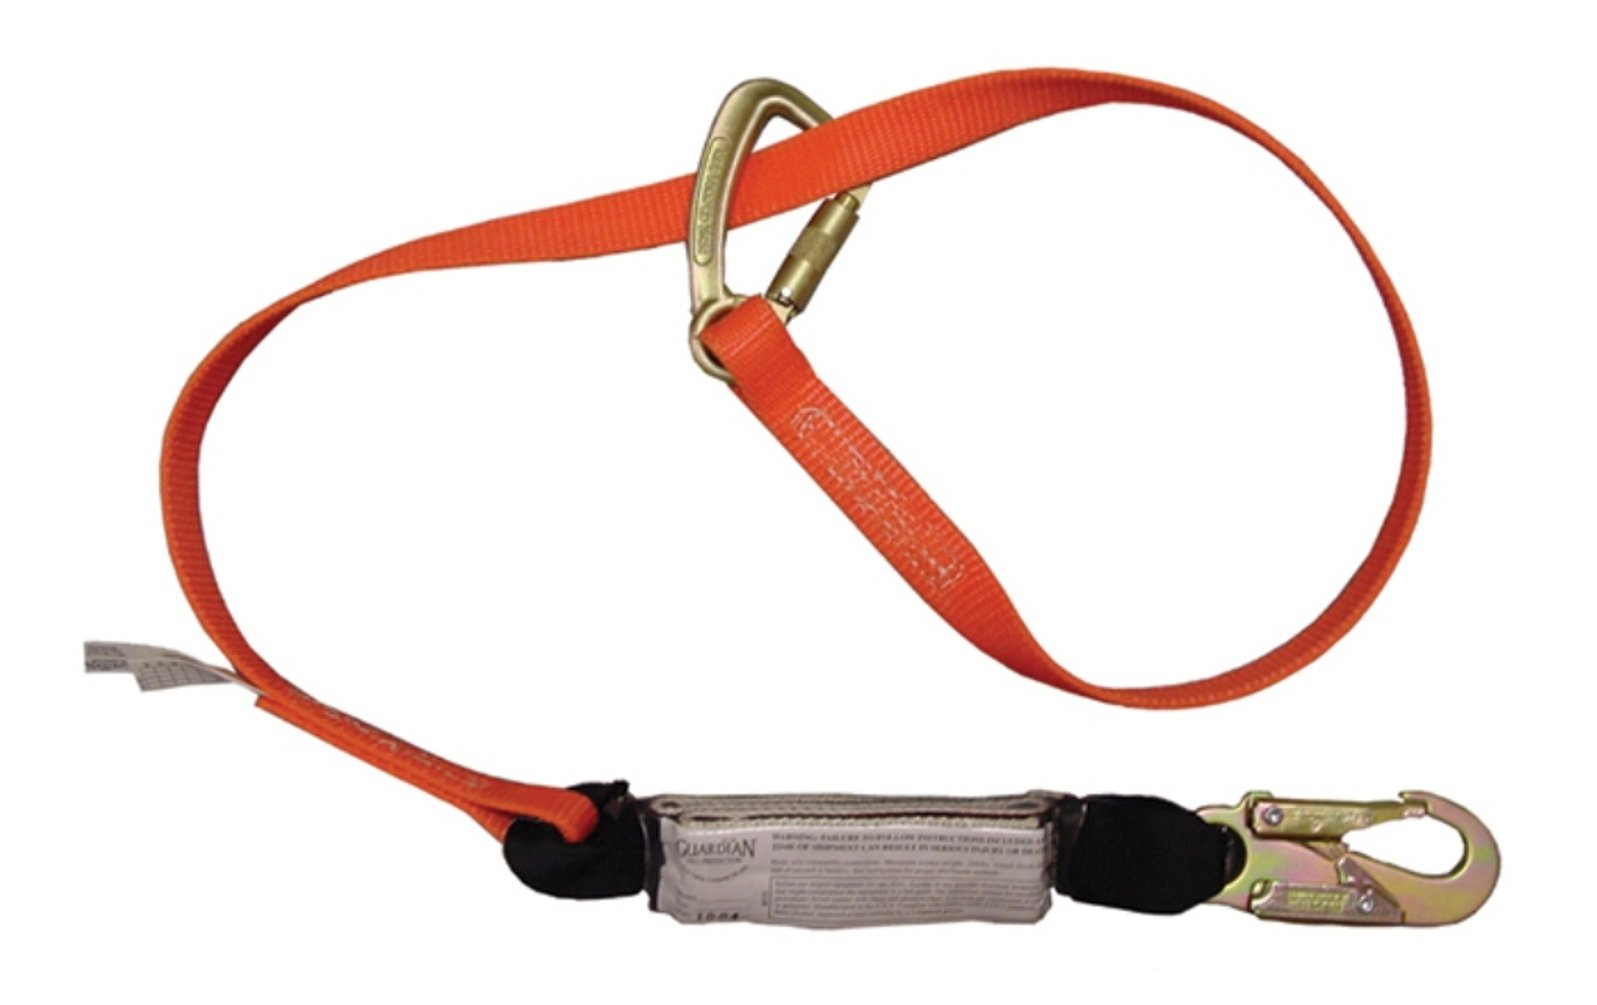 Guardian Fall Protection 11830 Single Leg Shock Stop Double Lock Wrap Lanyard, Adjustable from 4-Feet to 6-Feet